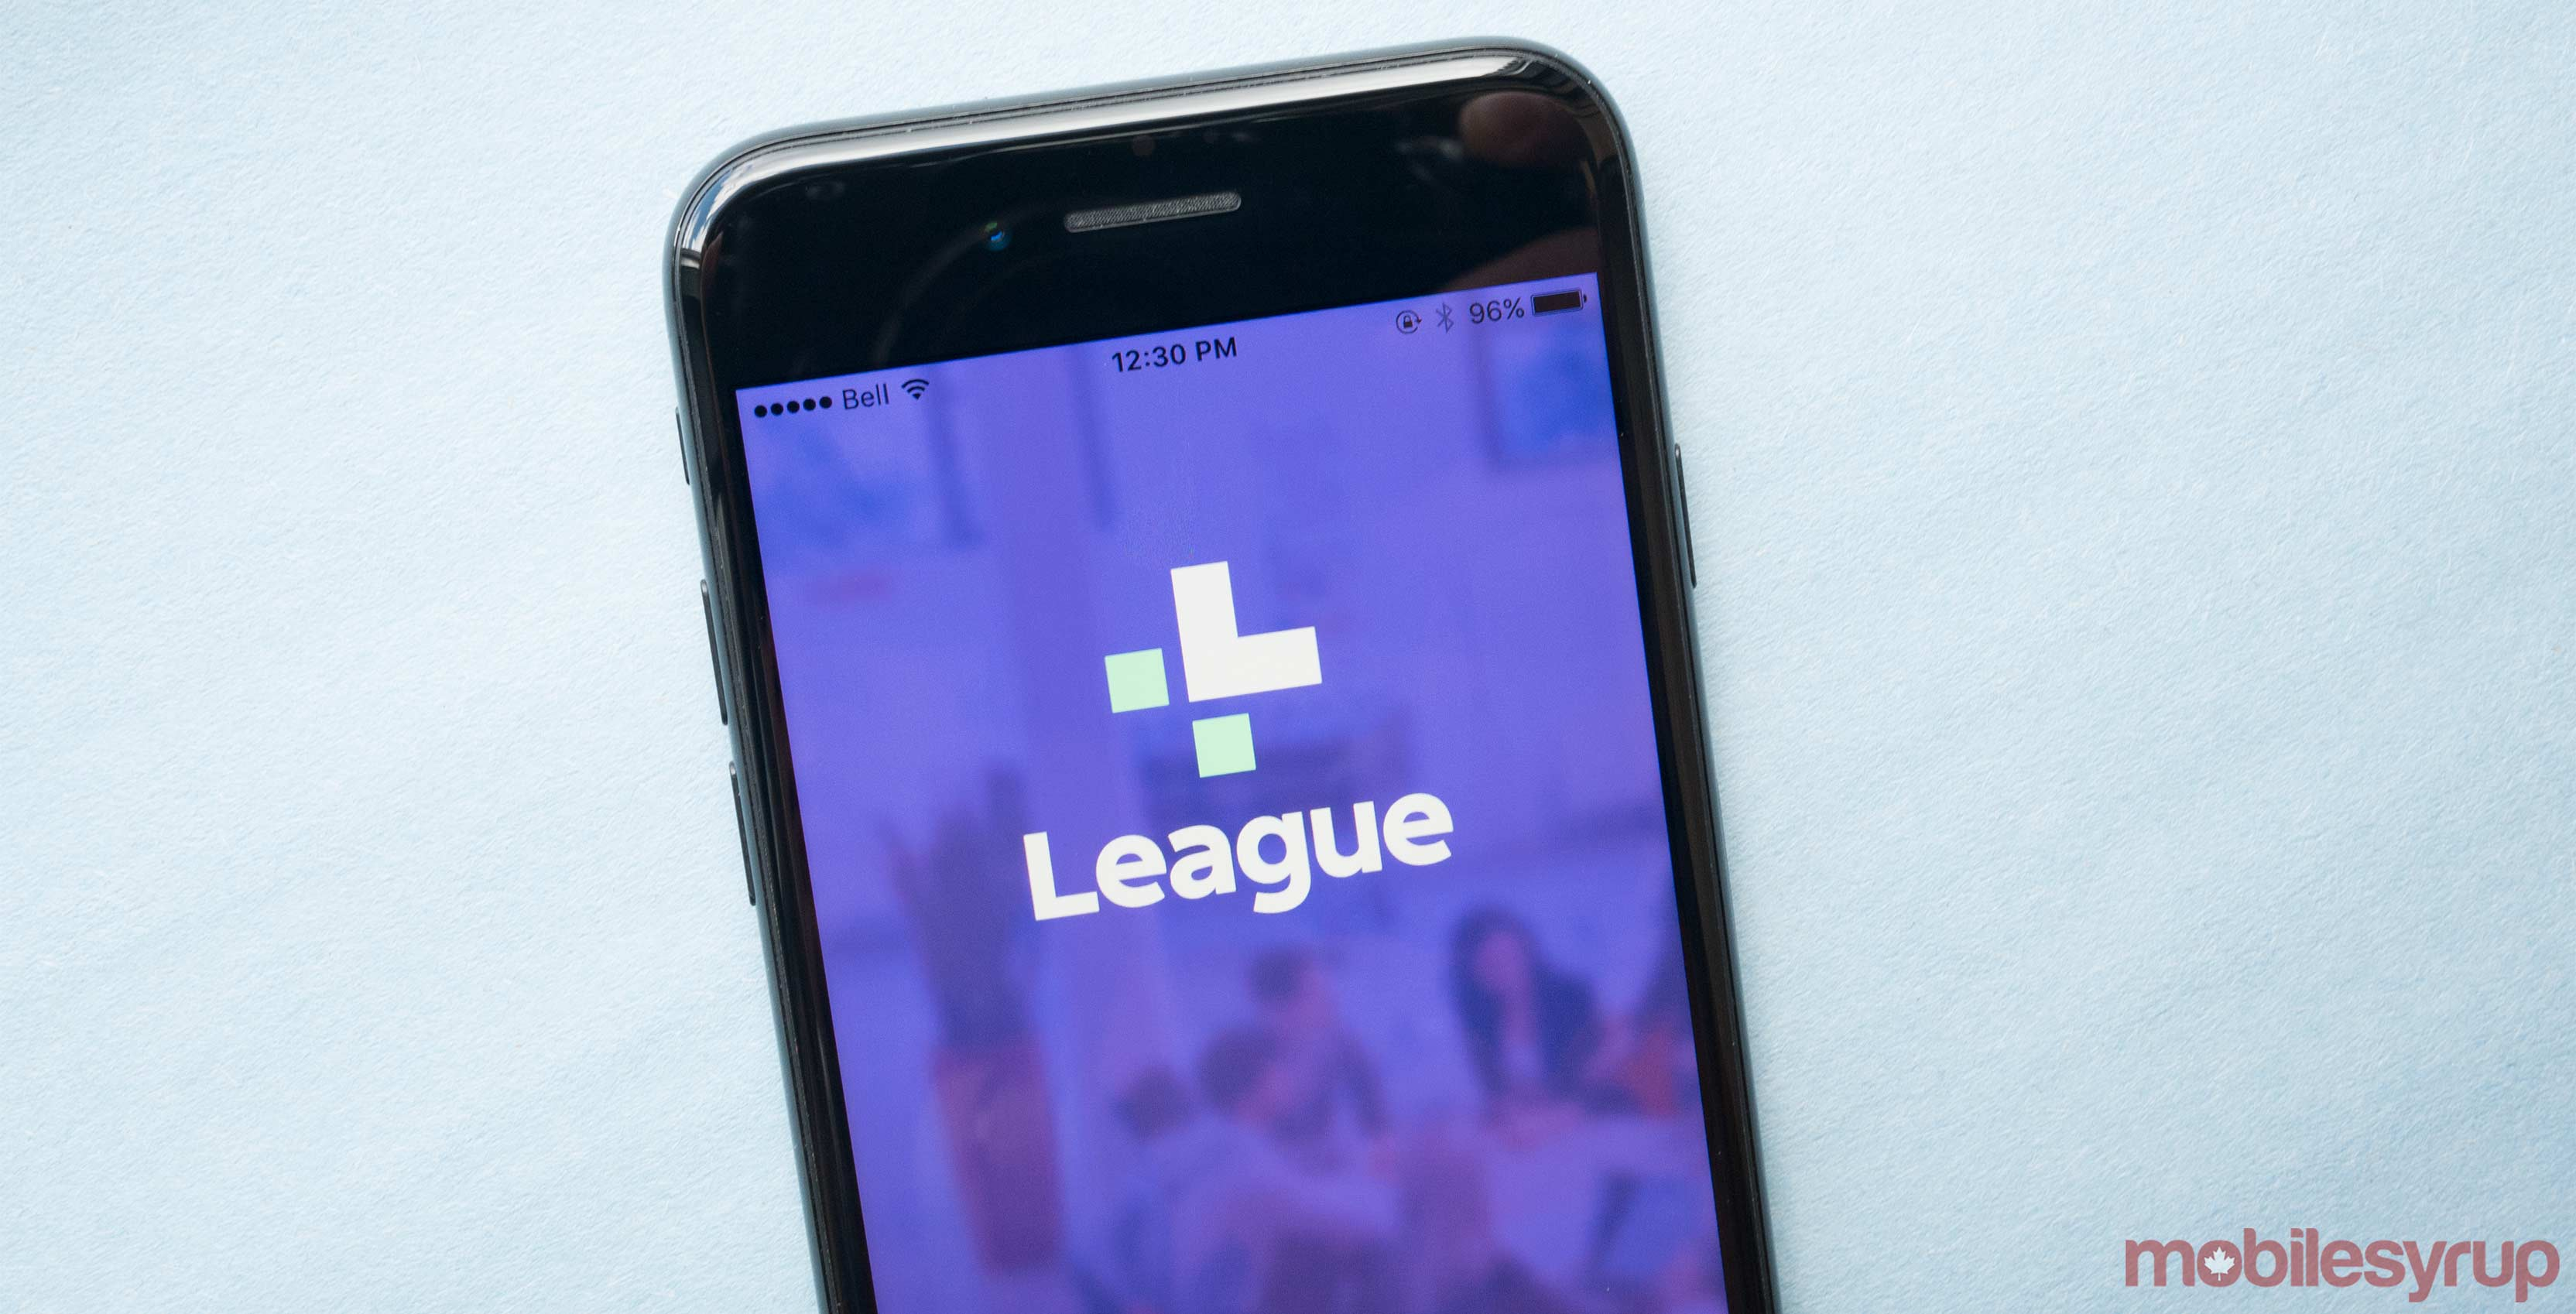 League adds personalized health concierge to its group